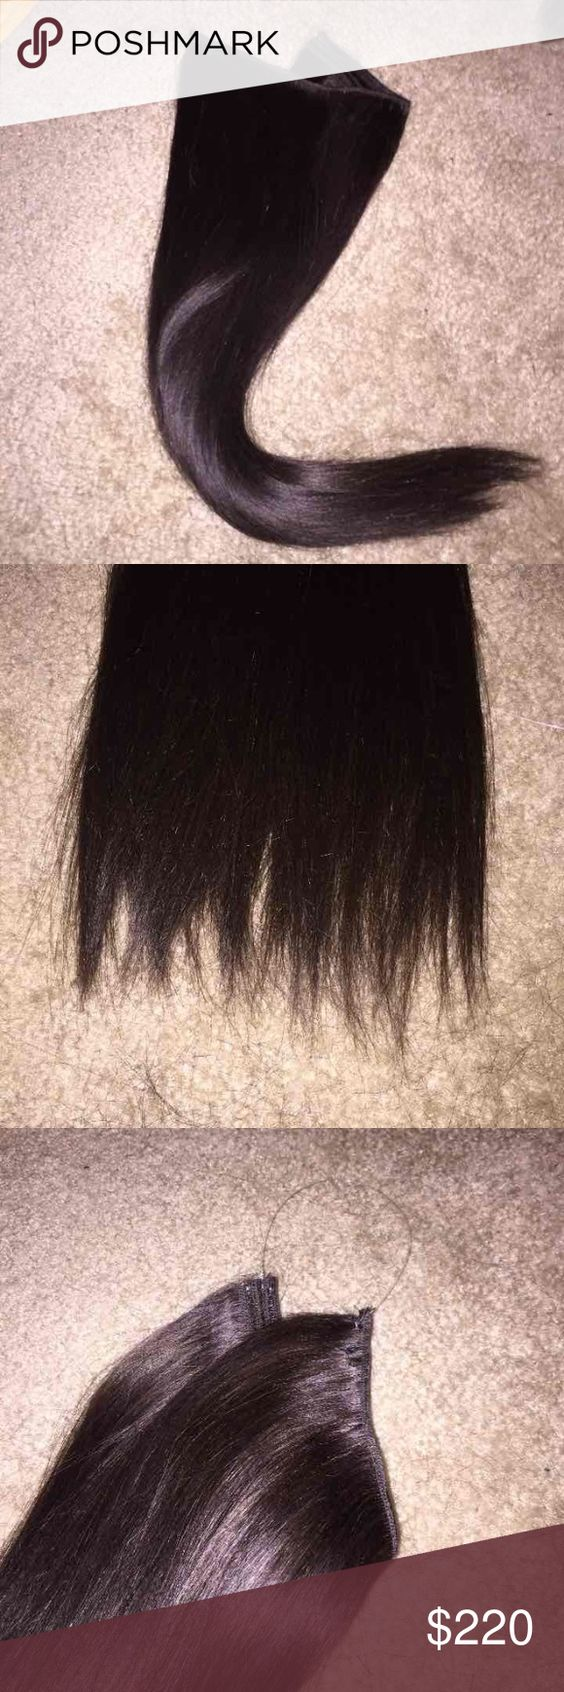 """Halo hair extensions 16"""" 100% Remy Human Hair Halo hair extensions 16"""" 100% Remy Human Hair. 4oz/120grams of hair in each piece. These can be made to order in different hair colors and lengths. Please message for details. Prices may vary if length changes. The halo wire is attached on one side you will custom fit it to the length needed for your head size by tying the final knot. Other"""